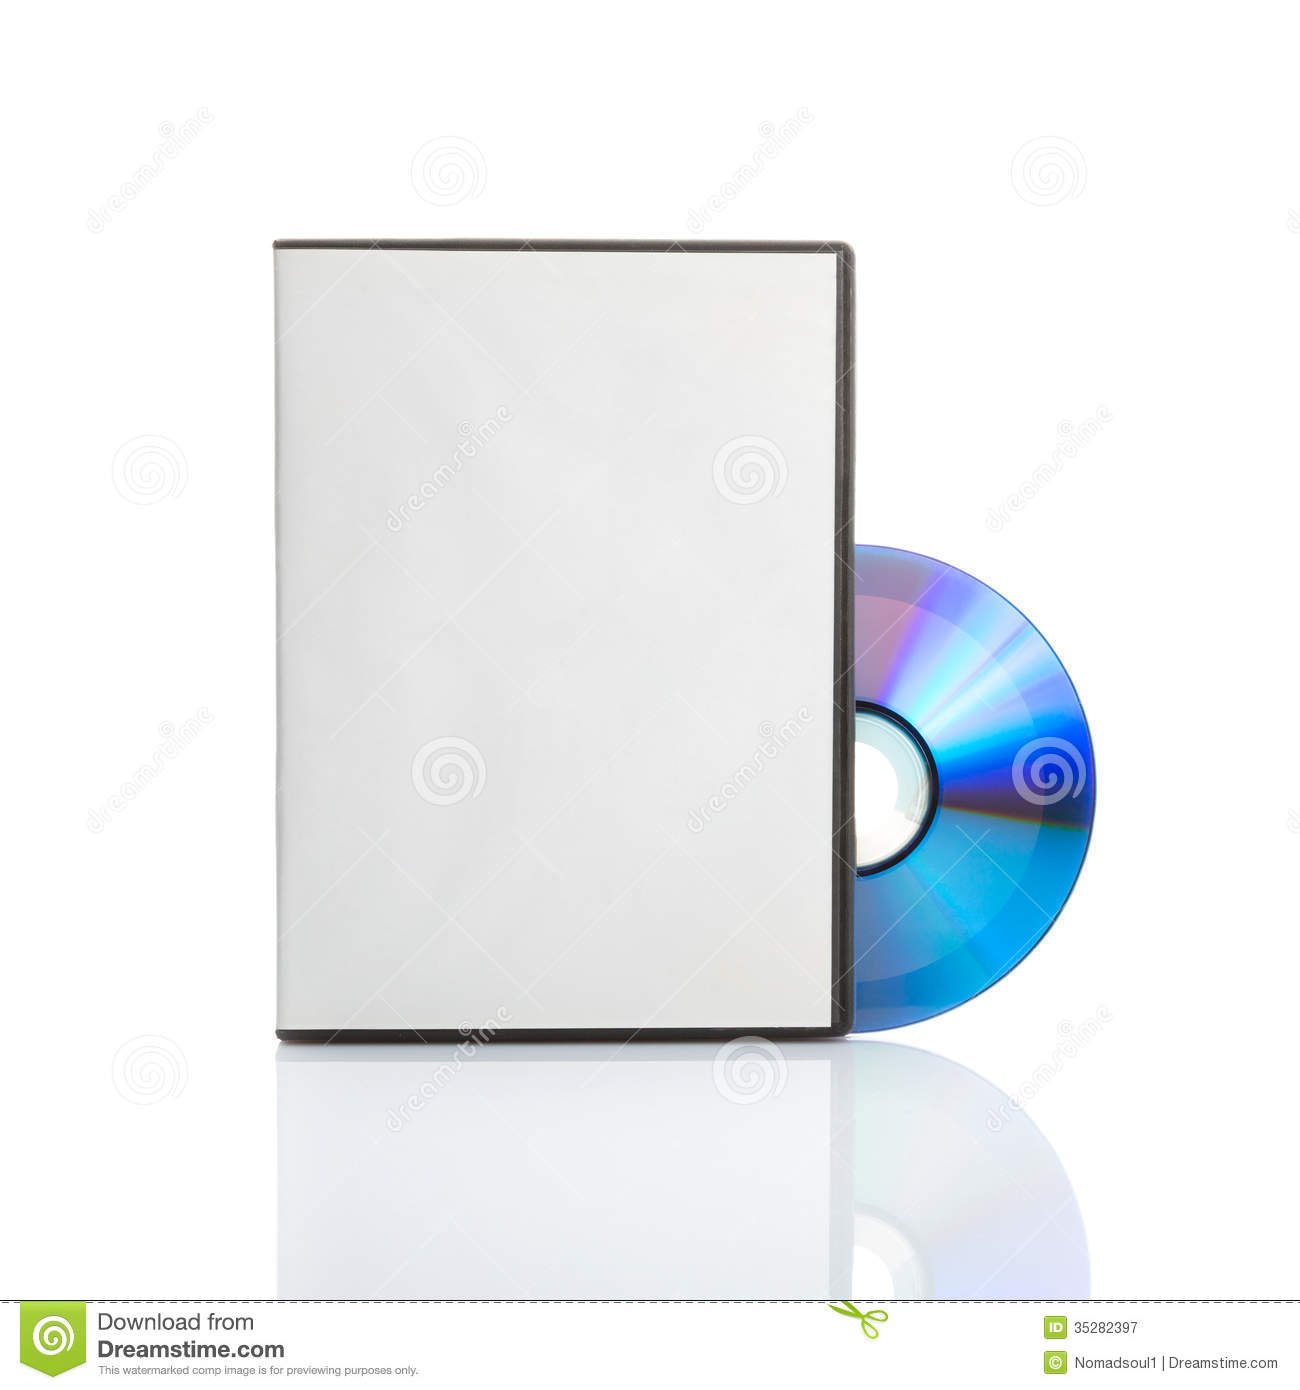 Dvd Cover Clipart (56+).